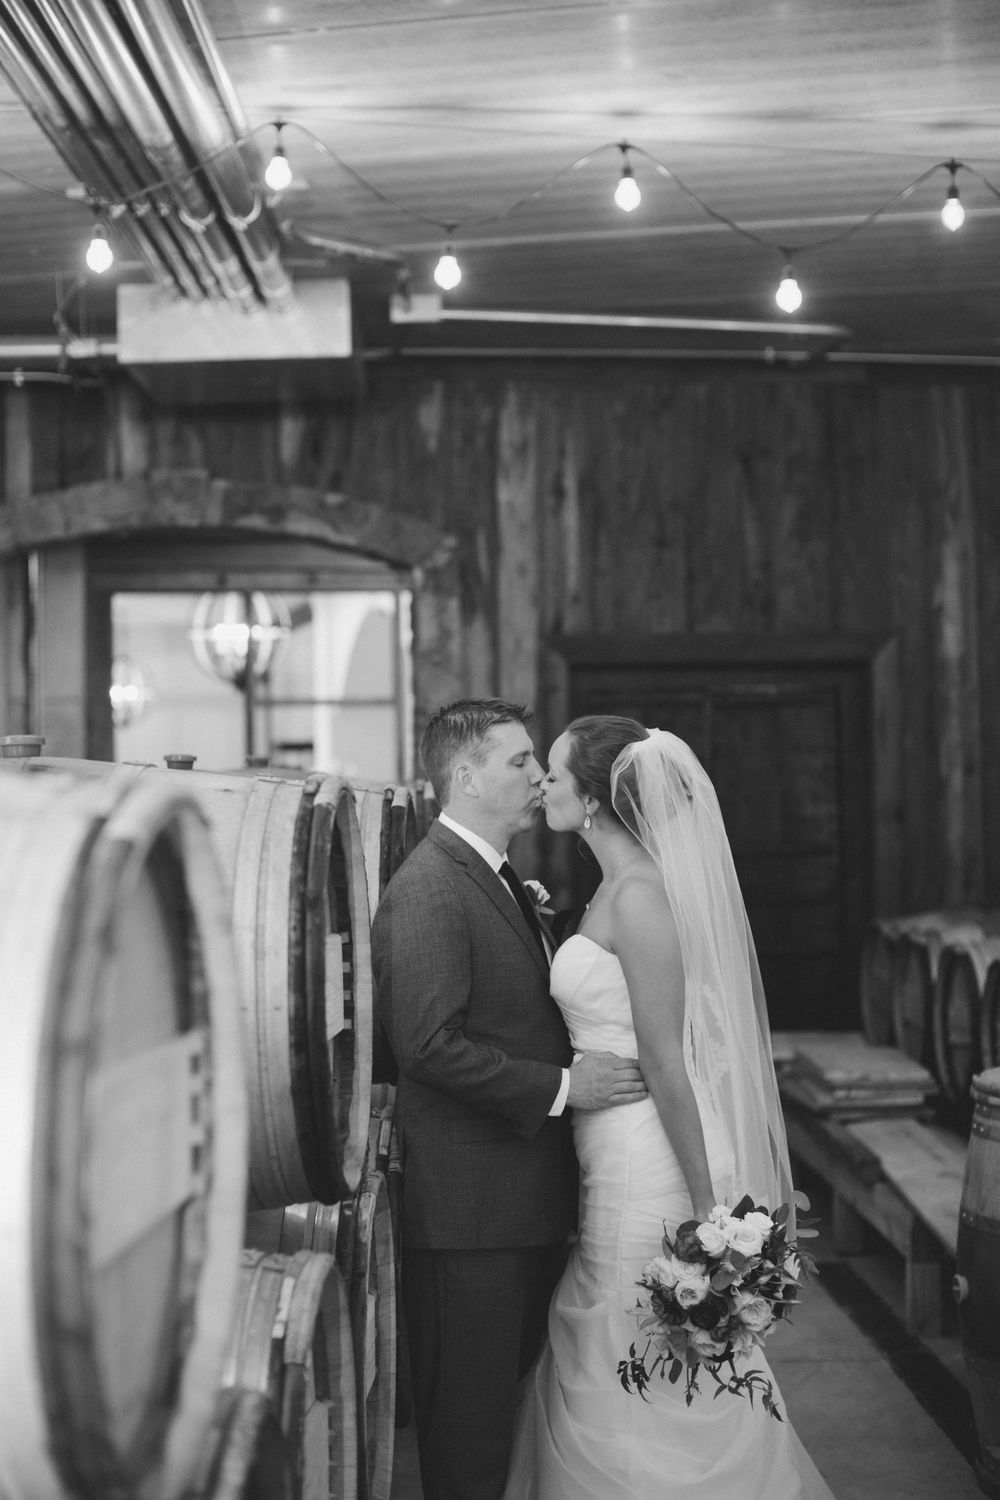 Vnes_Photography-S&J_Wedding-601.jpg